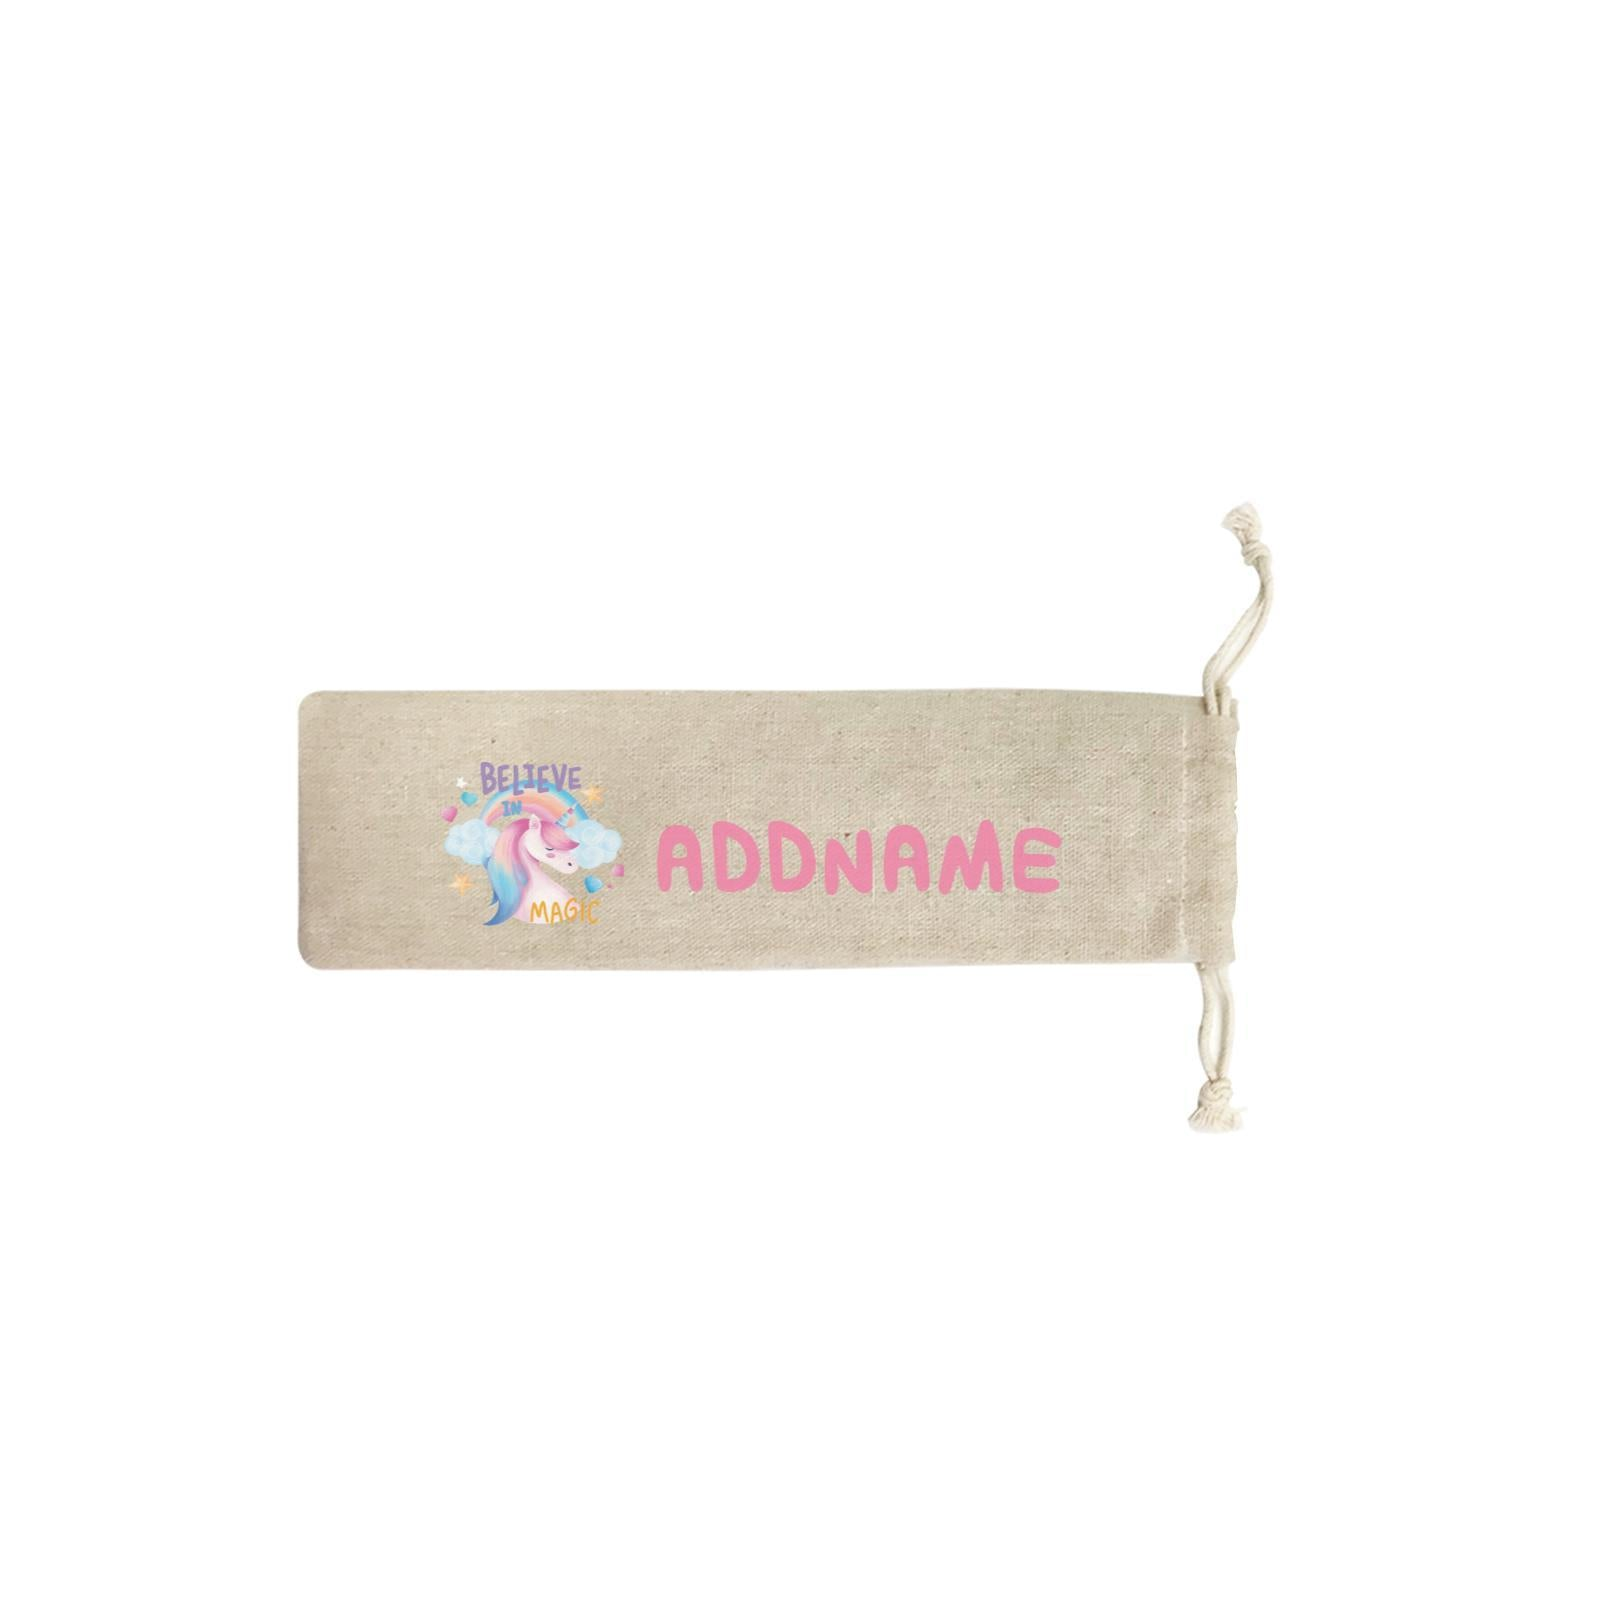 Children's Day Gift Series Believe In Magic Unicorn Addname SB Straw Pouch (No Straws included)